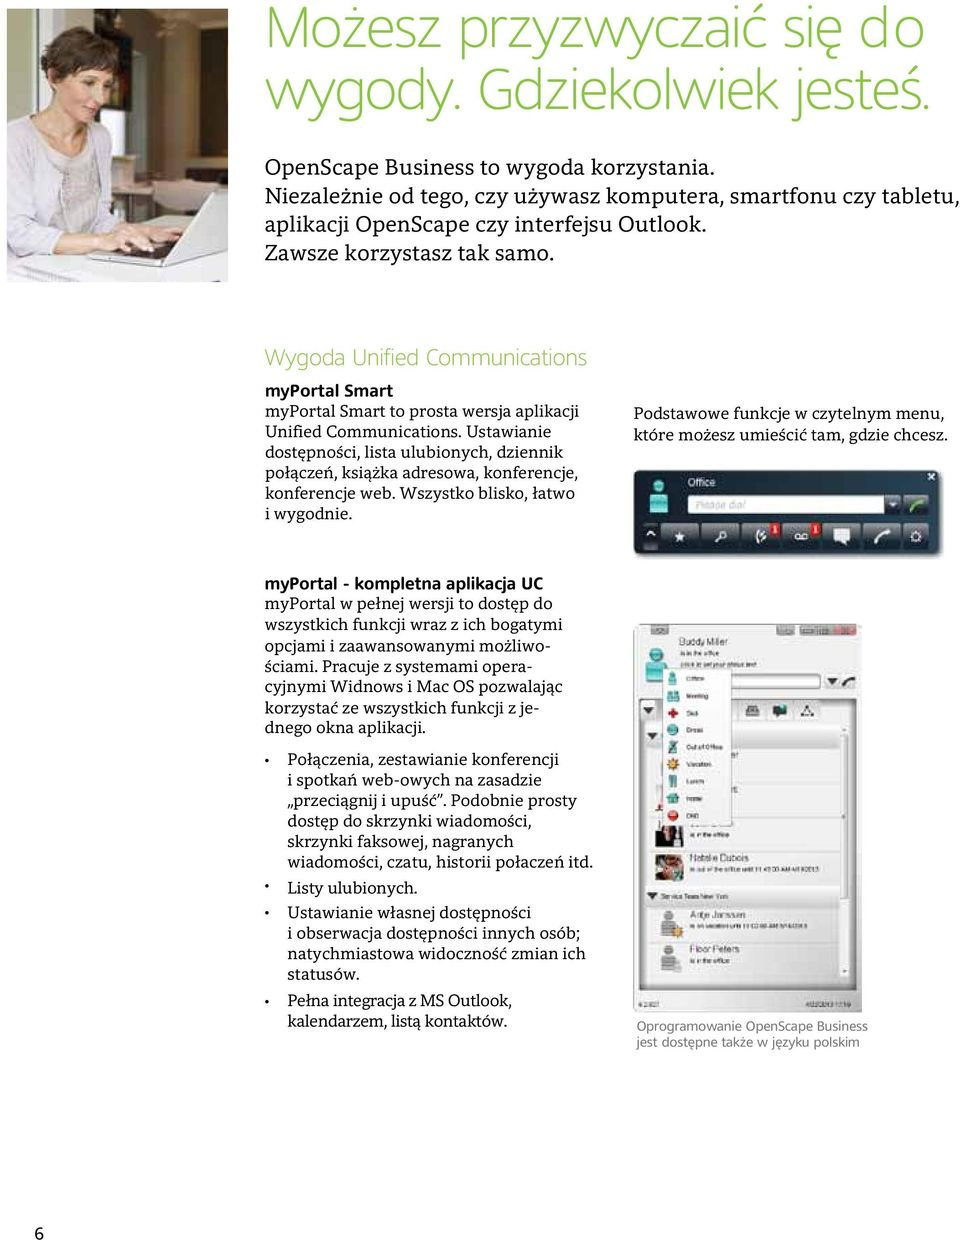 Wygoda Unified Communications myportal Smart myportal Smart to prosta wersja aplikacji Unified Communications.